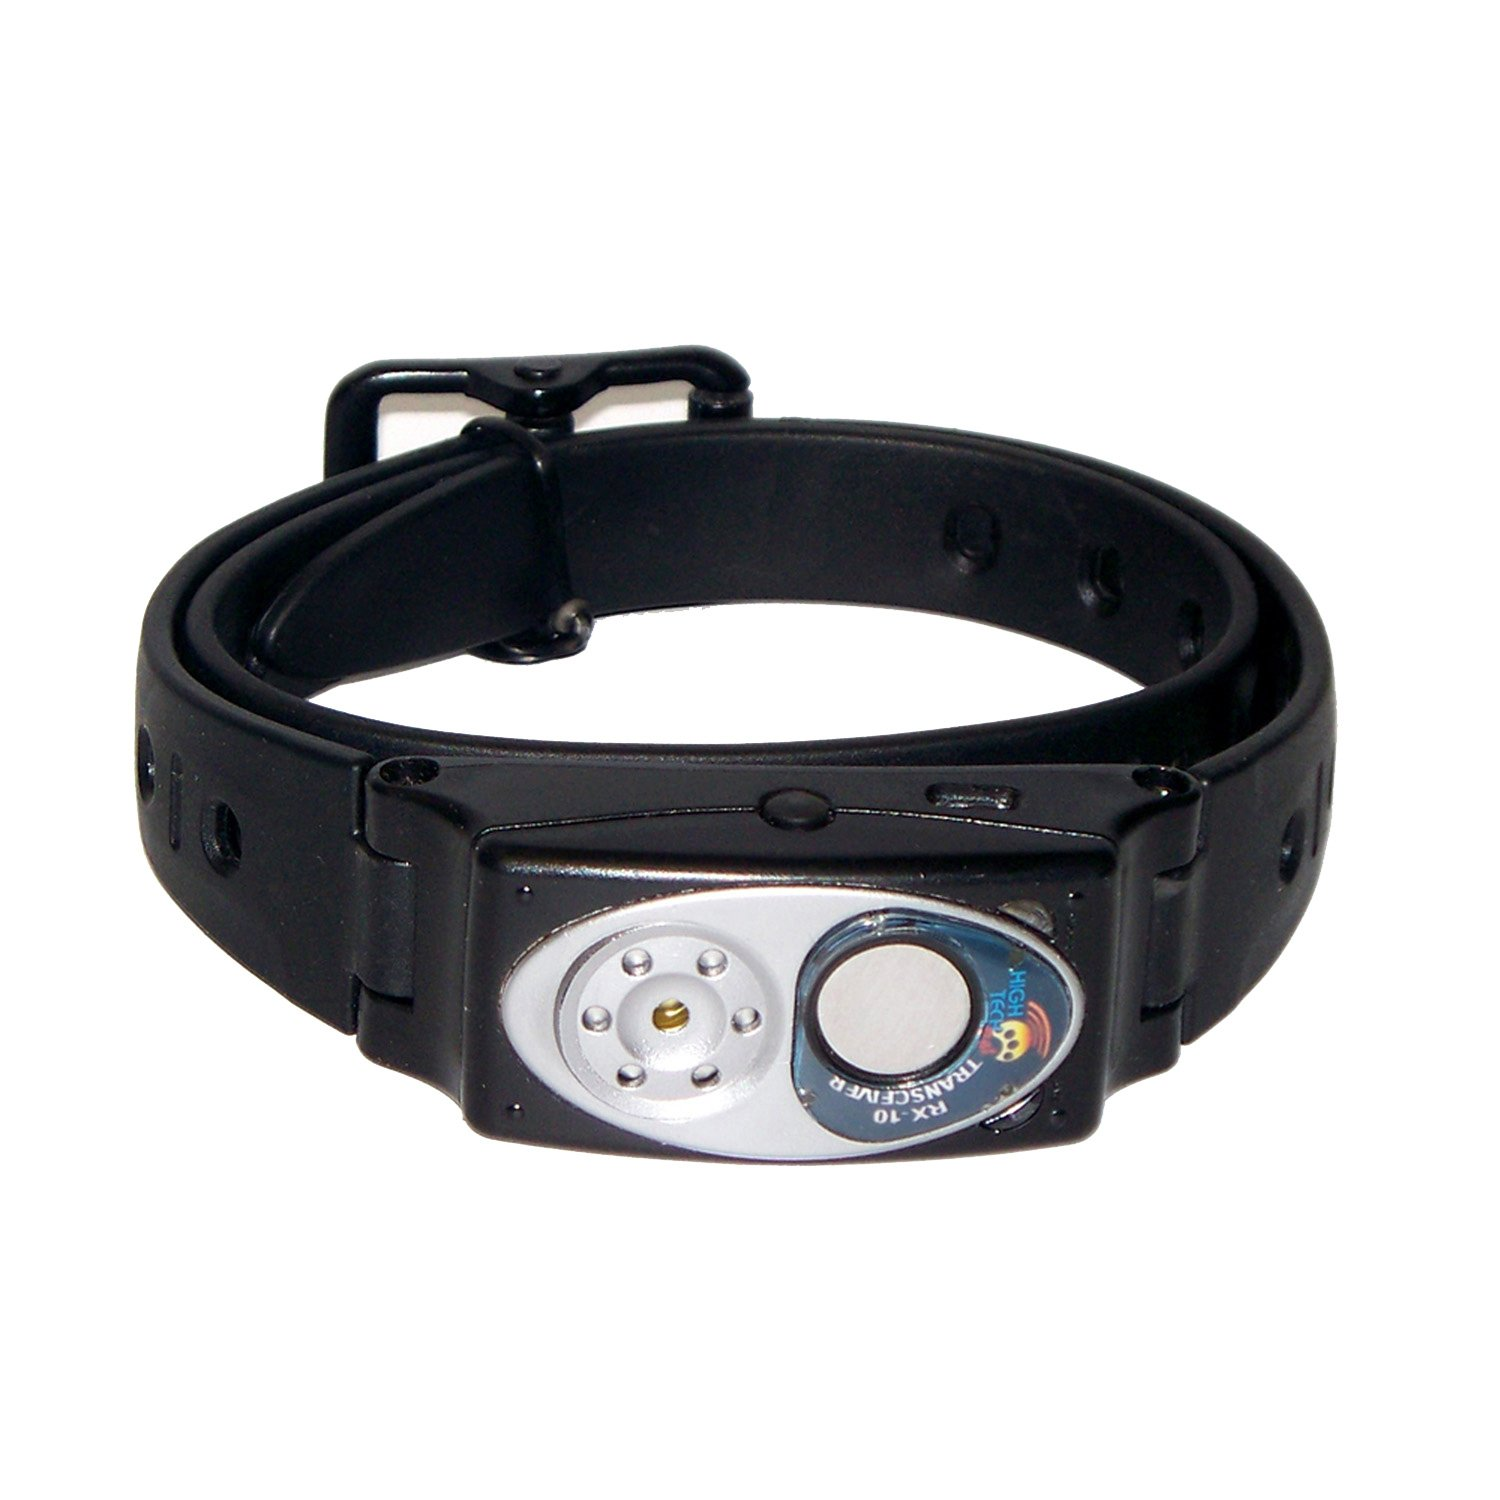 High Tech Pet Humane Contain Electronic Fence Dog Collar